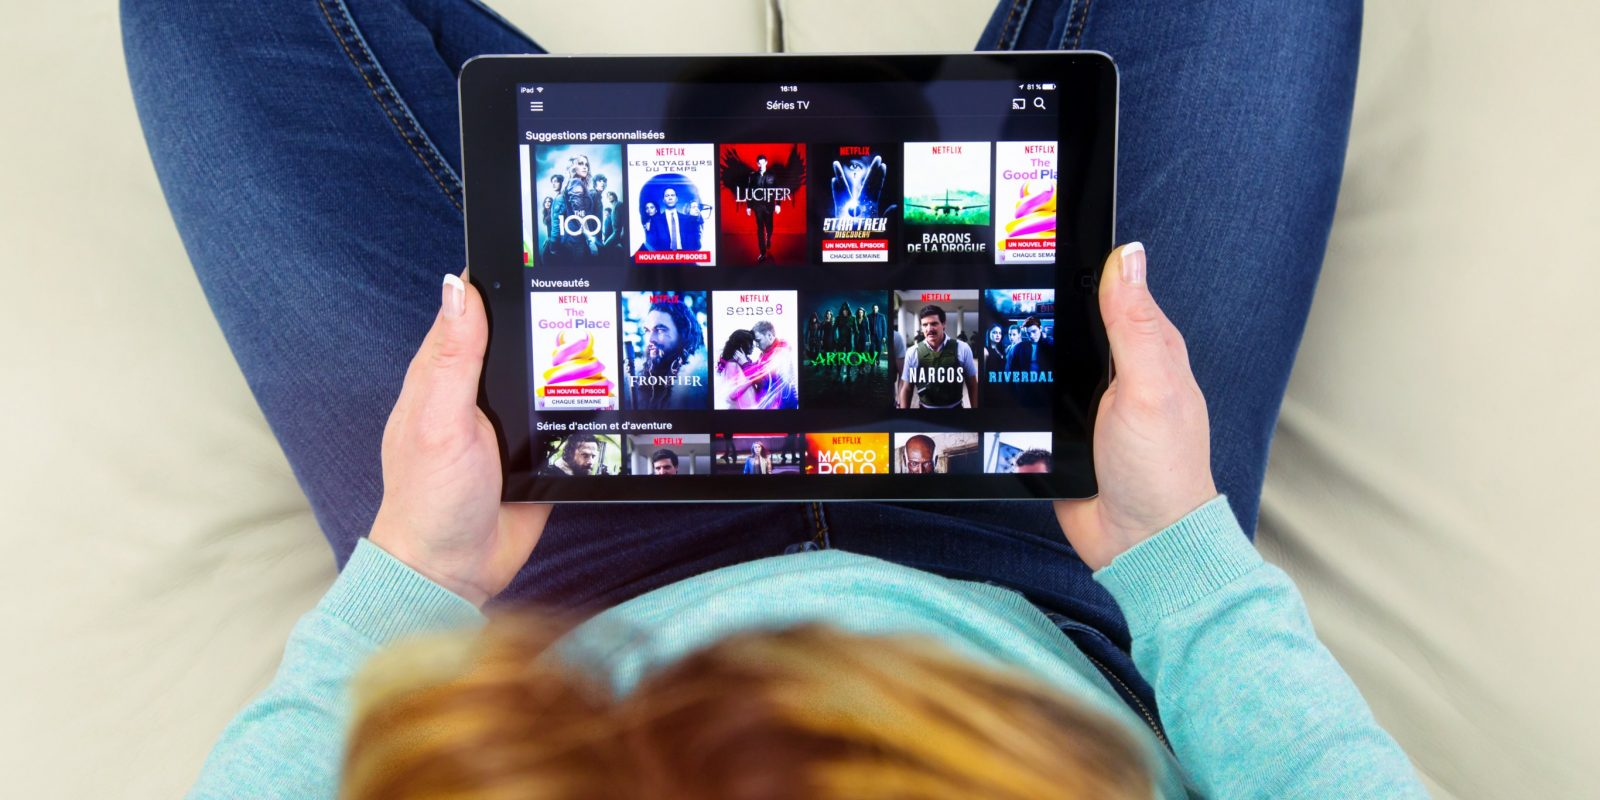 Networks and streaming companies are trying to reinvent TV advertising with new ad formats and buying options, but advertisers see holes in their lofty plans